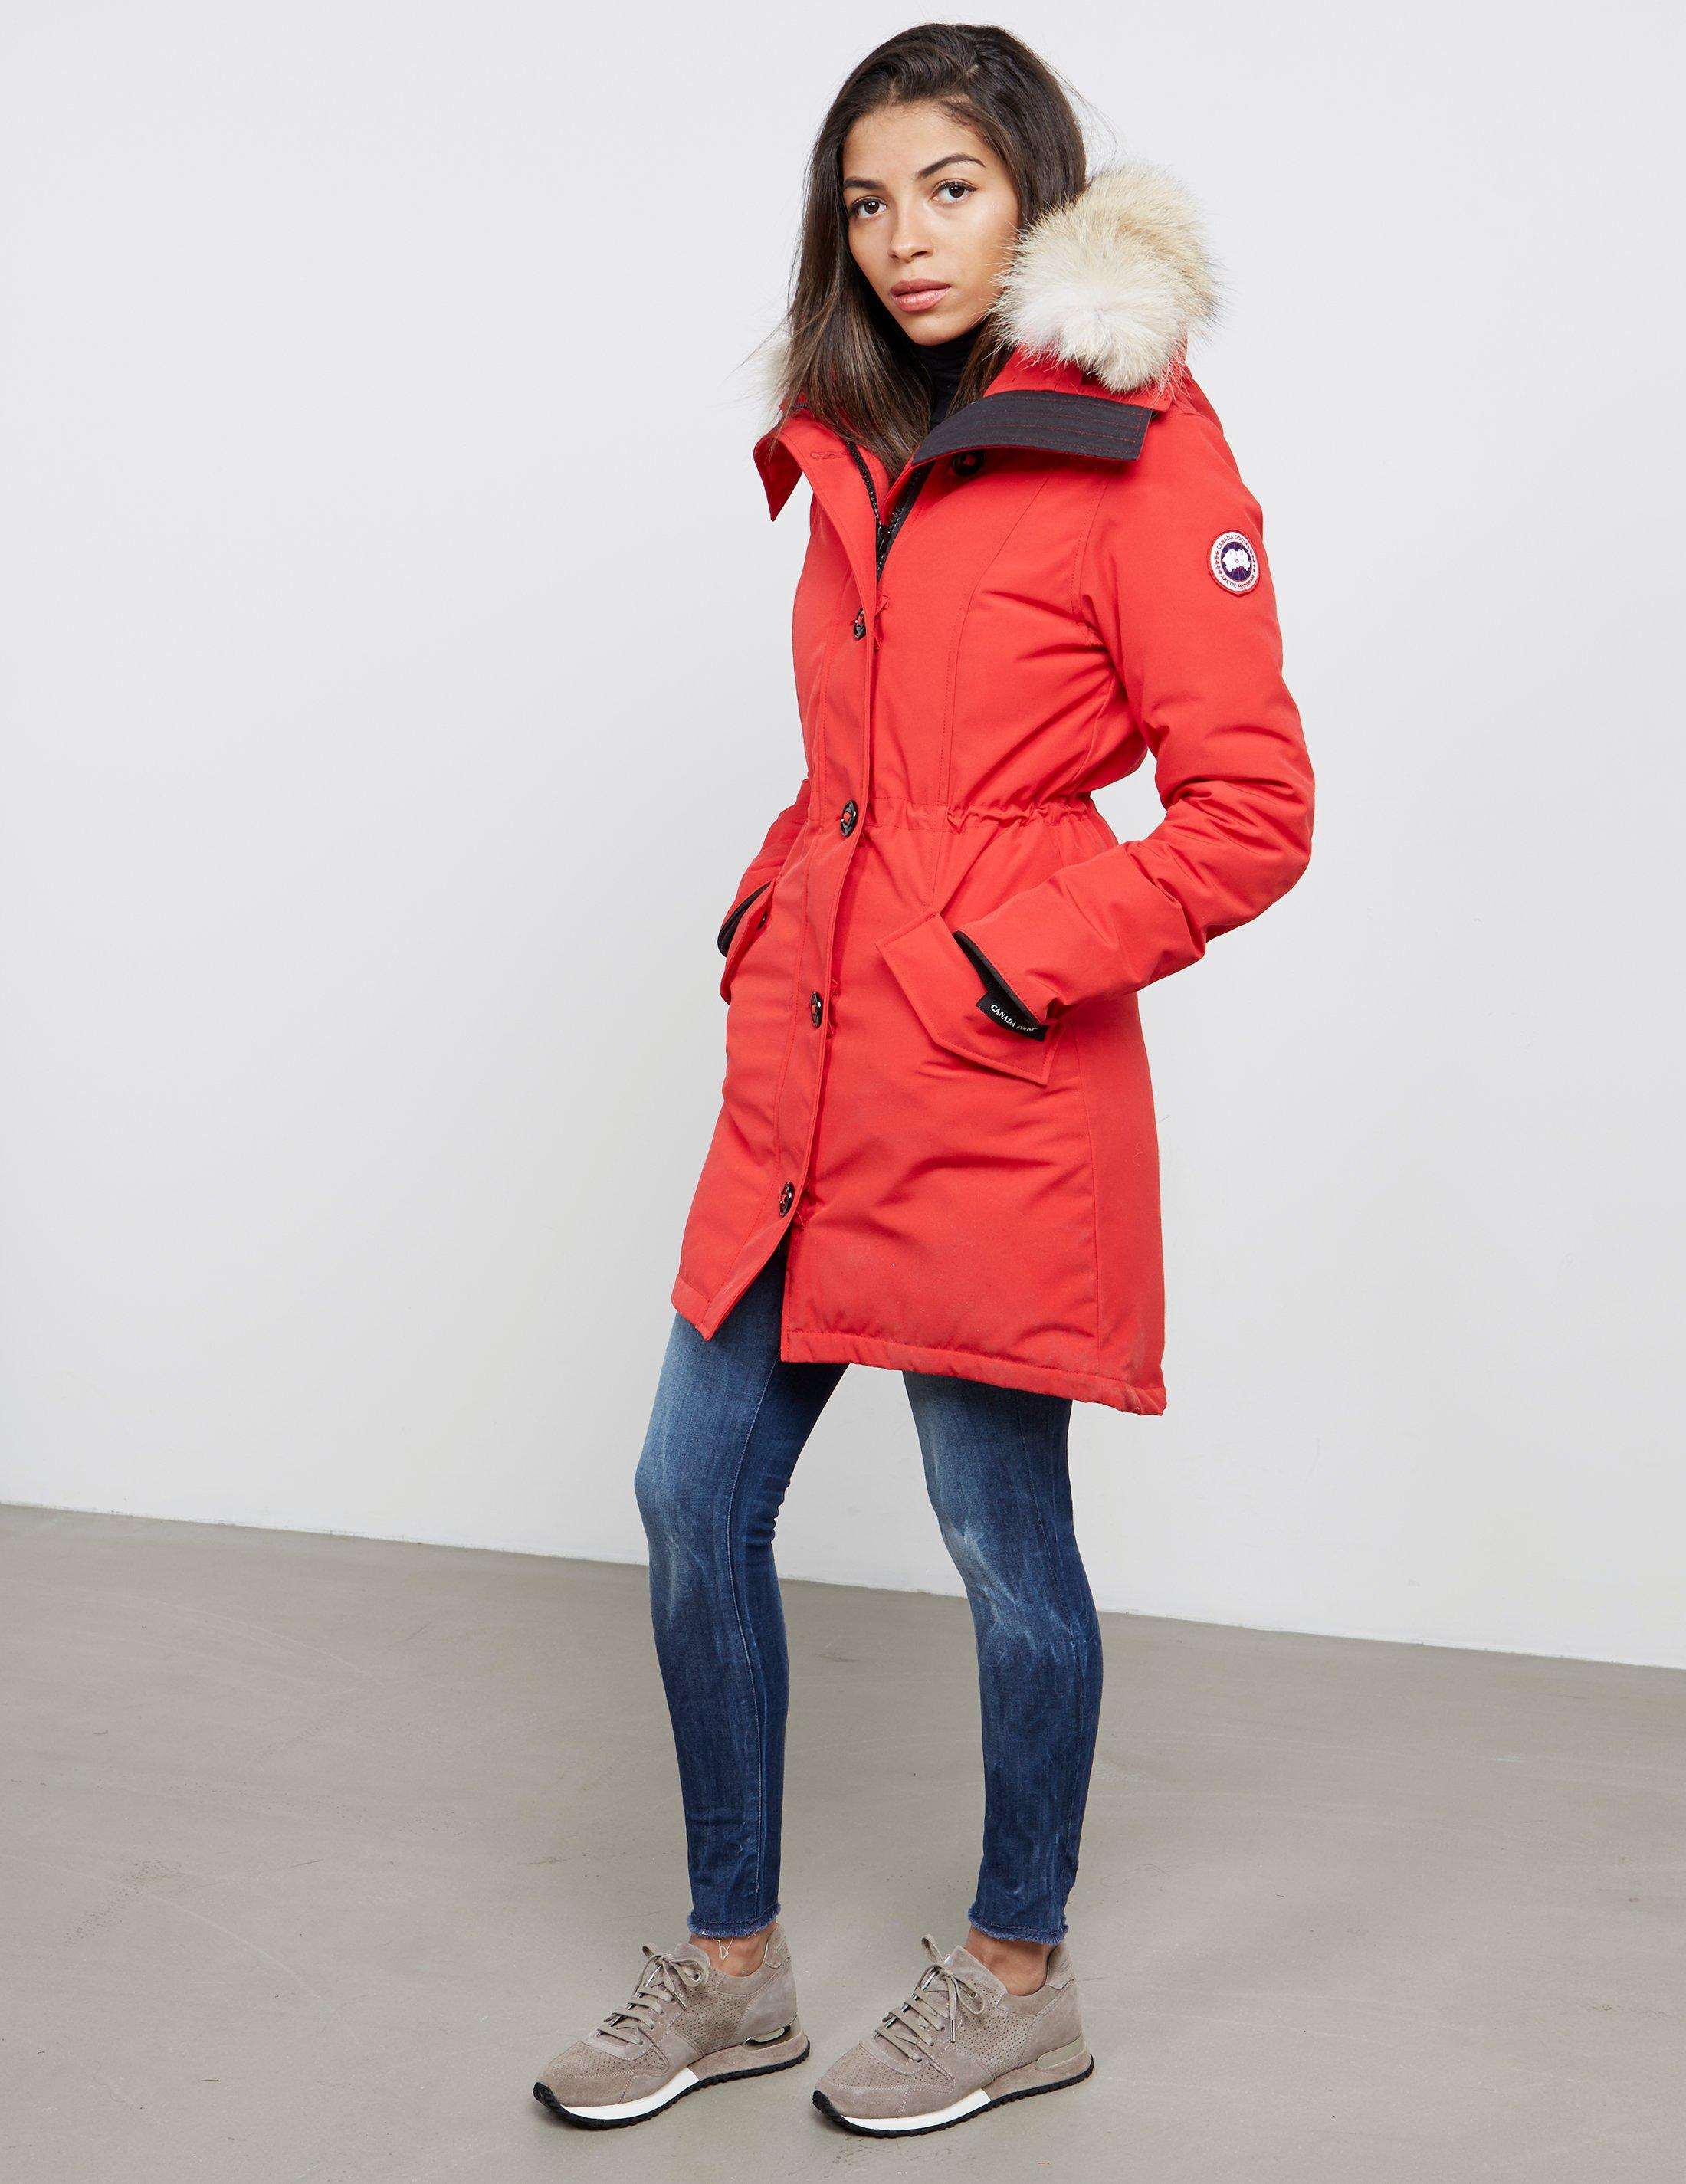 ca9473d58900d ... promo code for lyst canada goose womens rossclair padded parka jacket  red in red save 1.1073253833049392